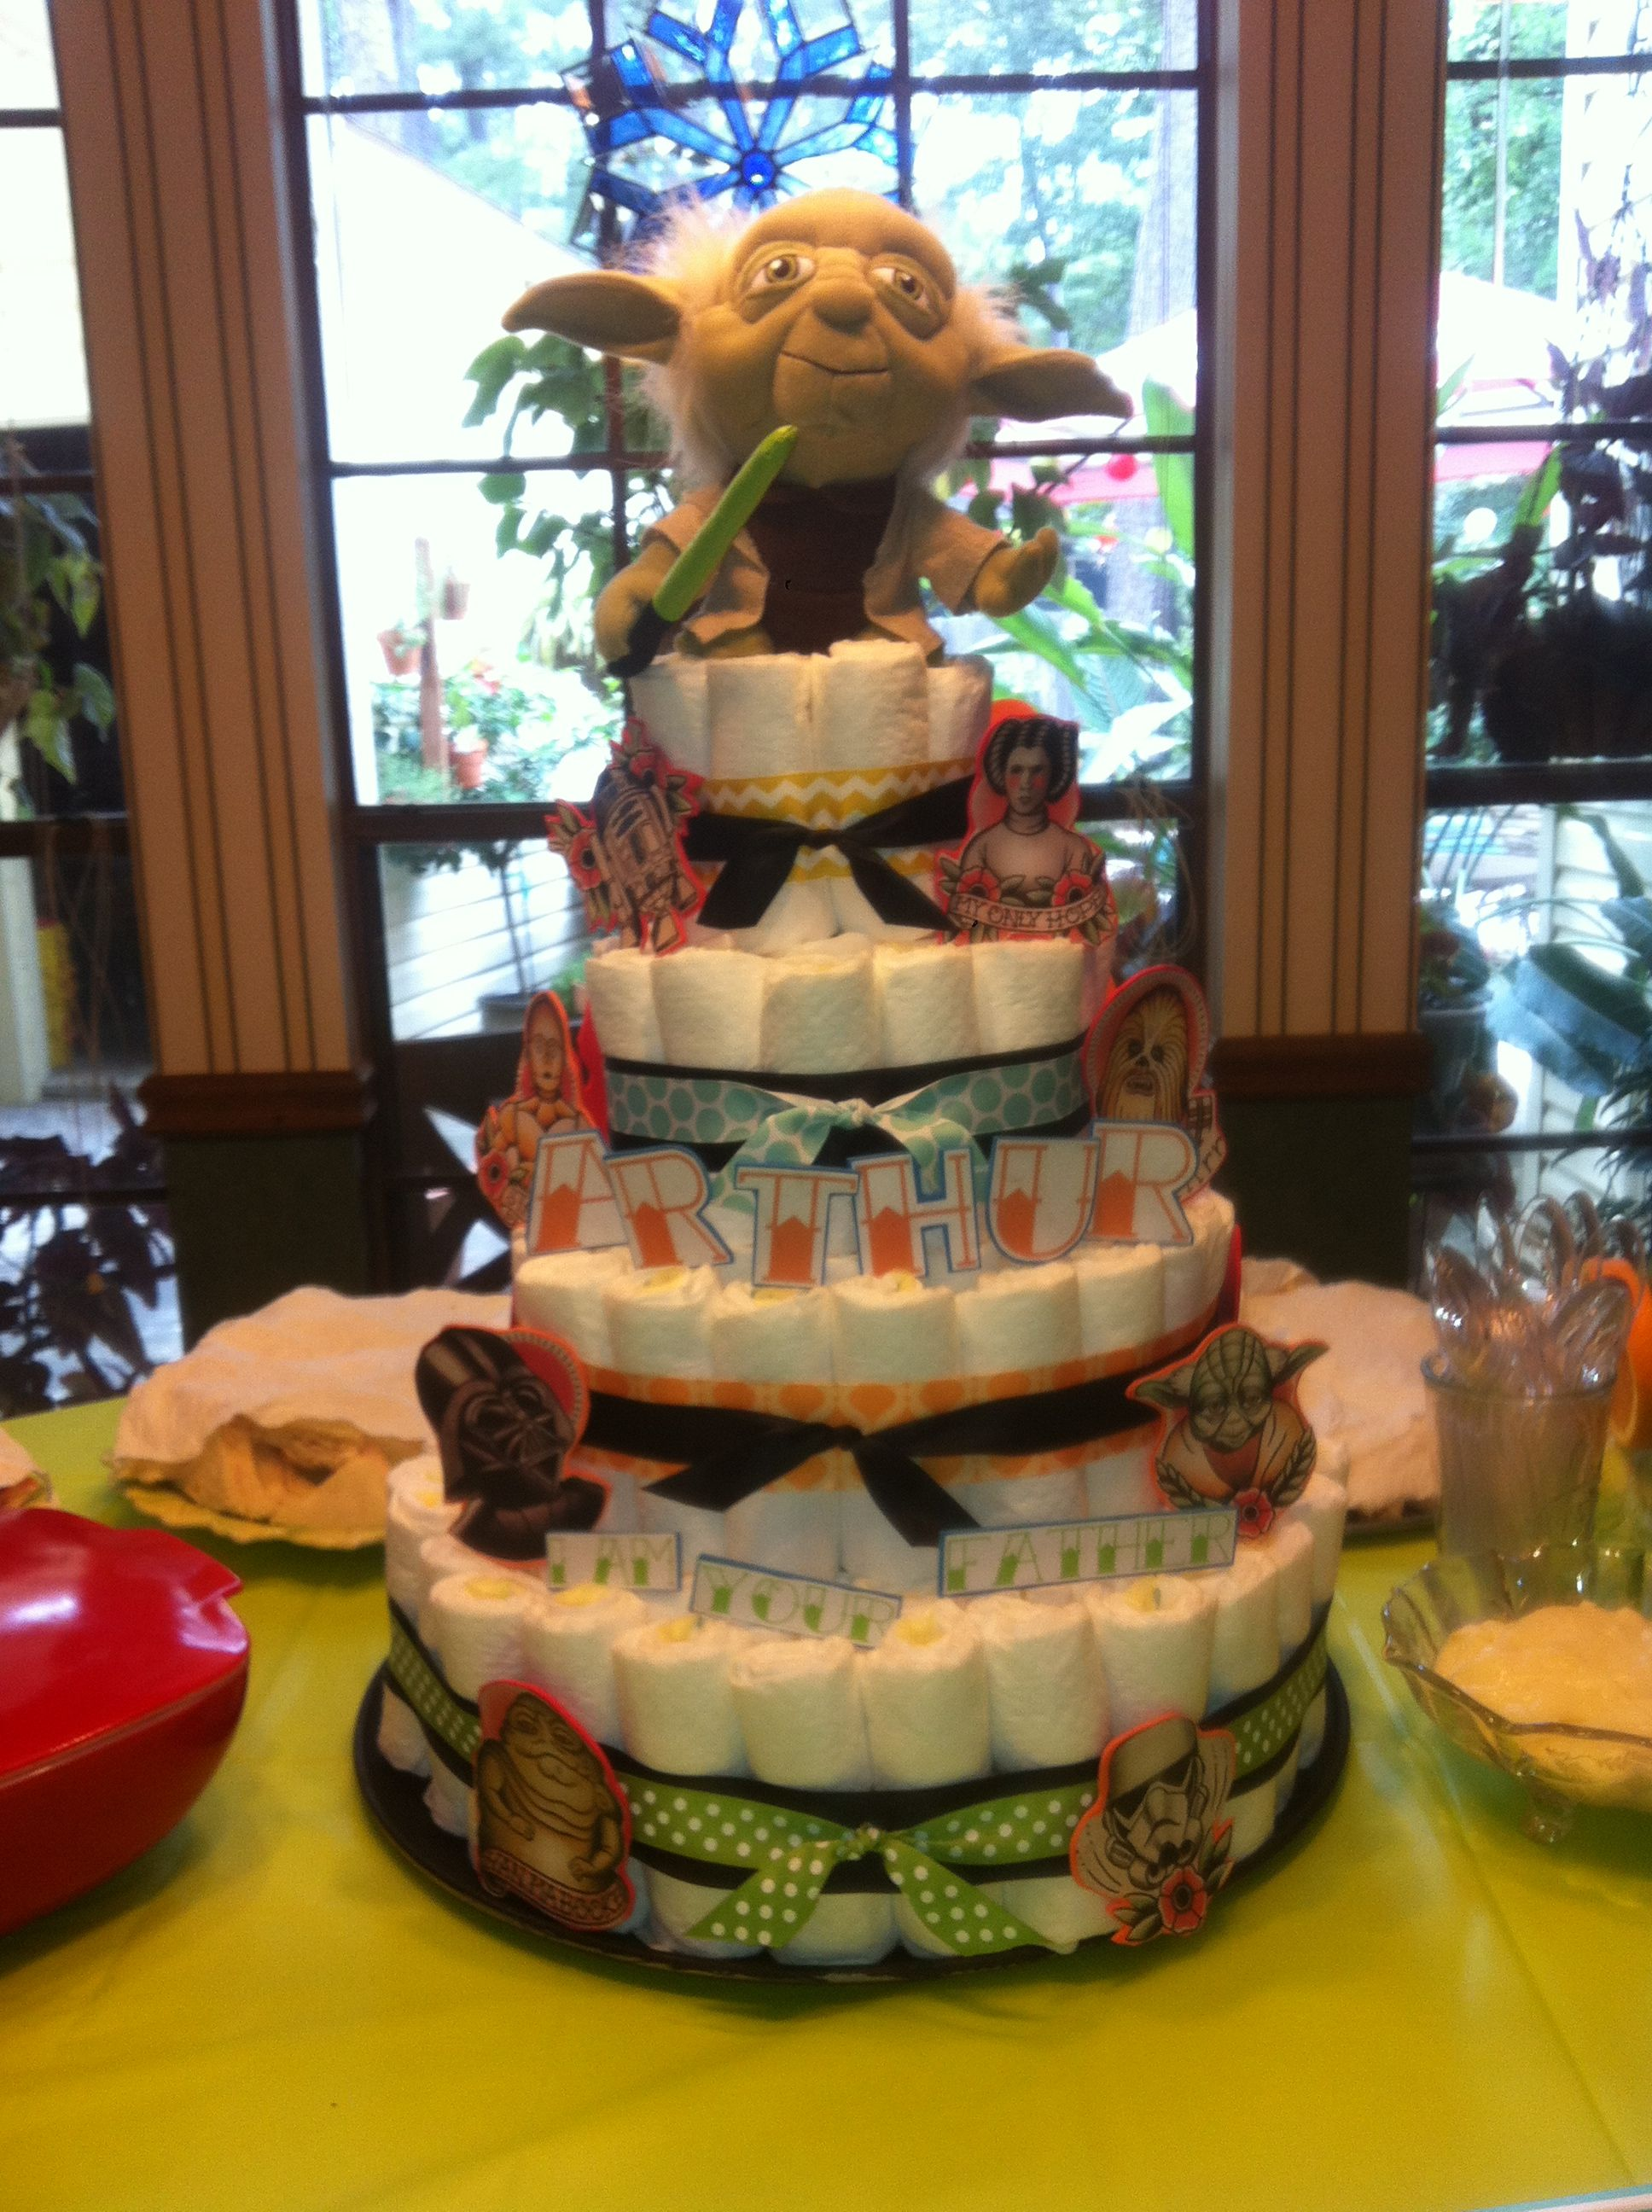 A Diaper Cake I Made For A Colorful, Star Wars Themed Baby Shower! May